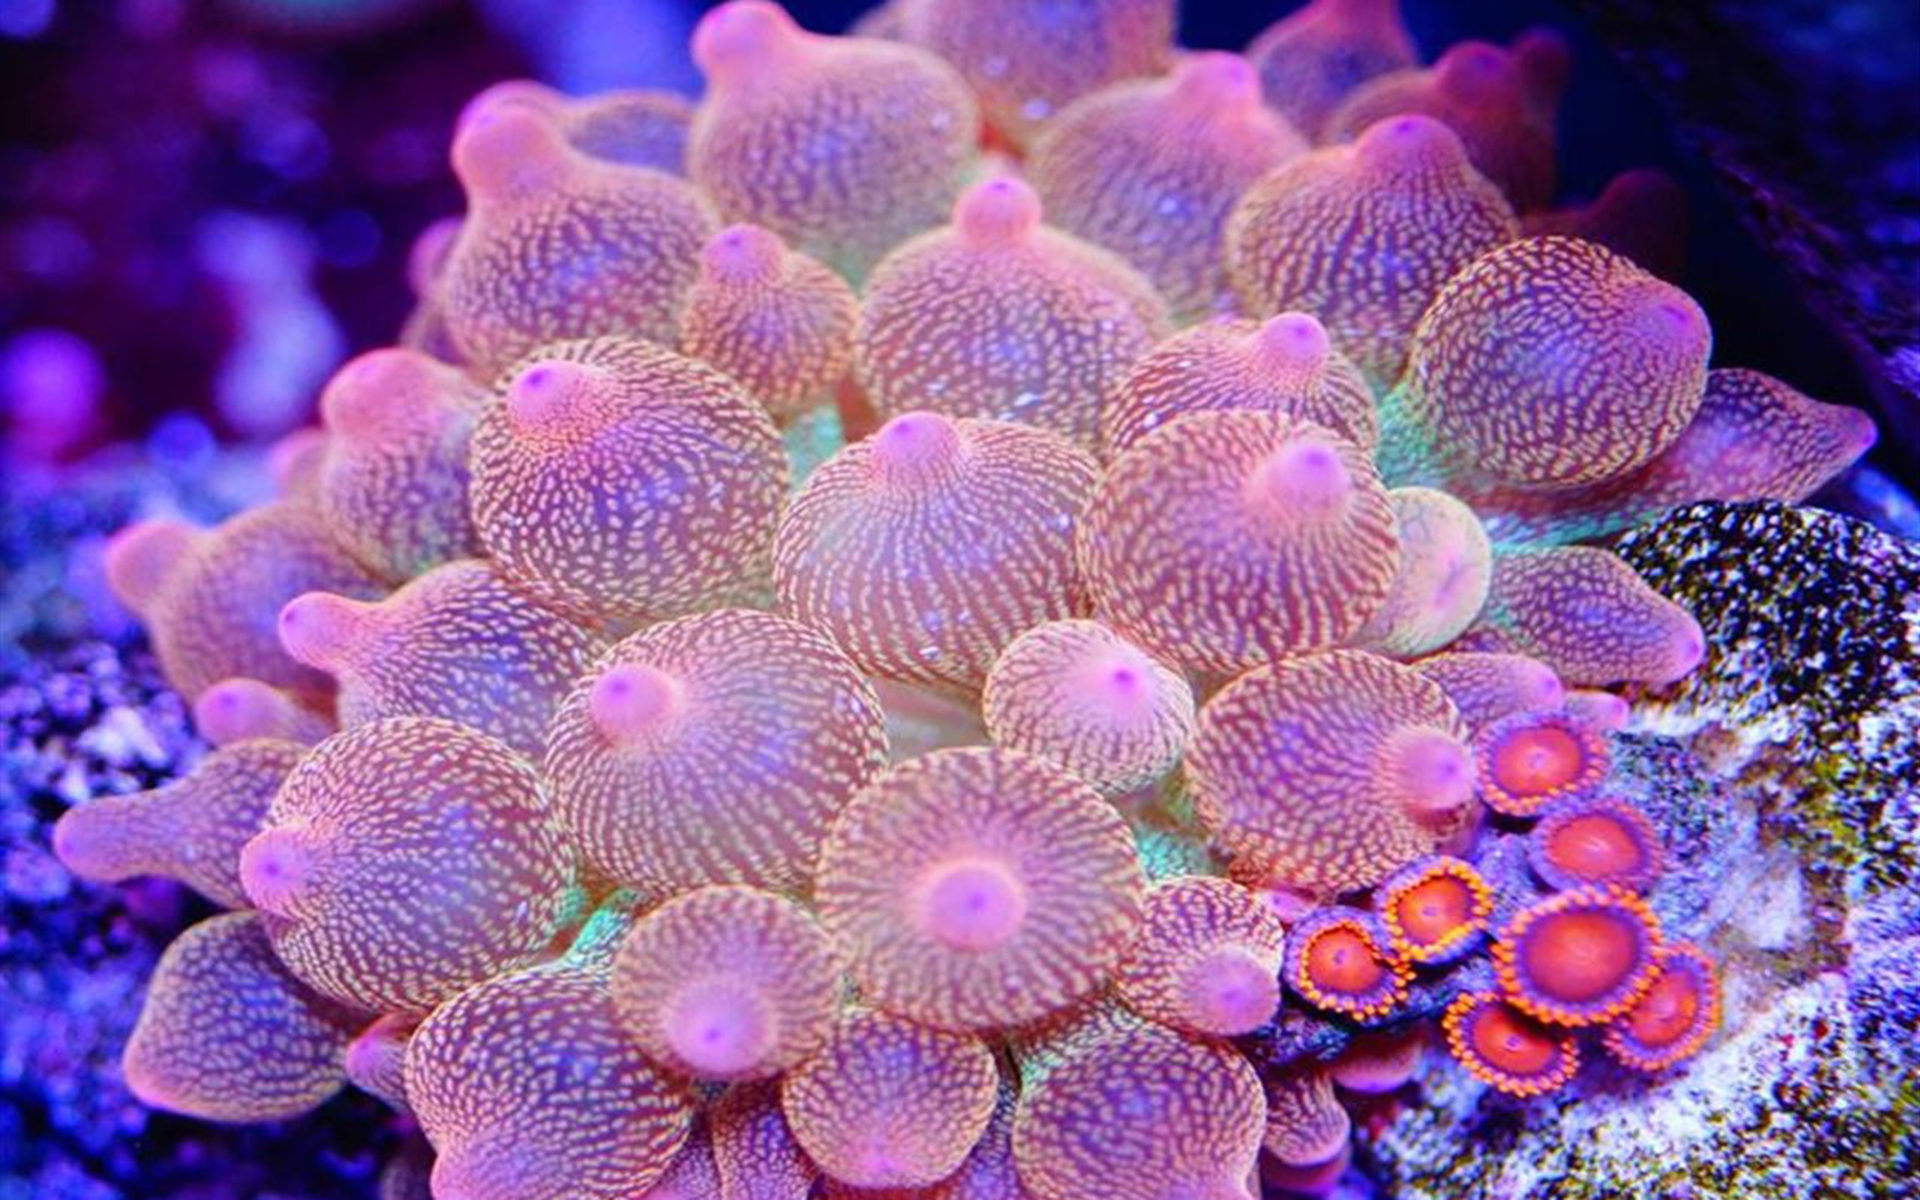 Sea Turtle Iphone Wallpaper Entacmaea Quadricolor Commonly Called Bubble Tip Anemone